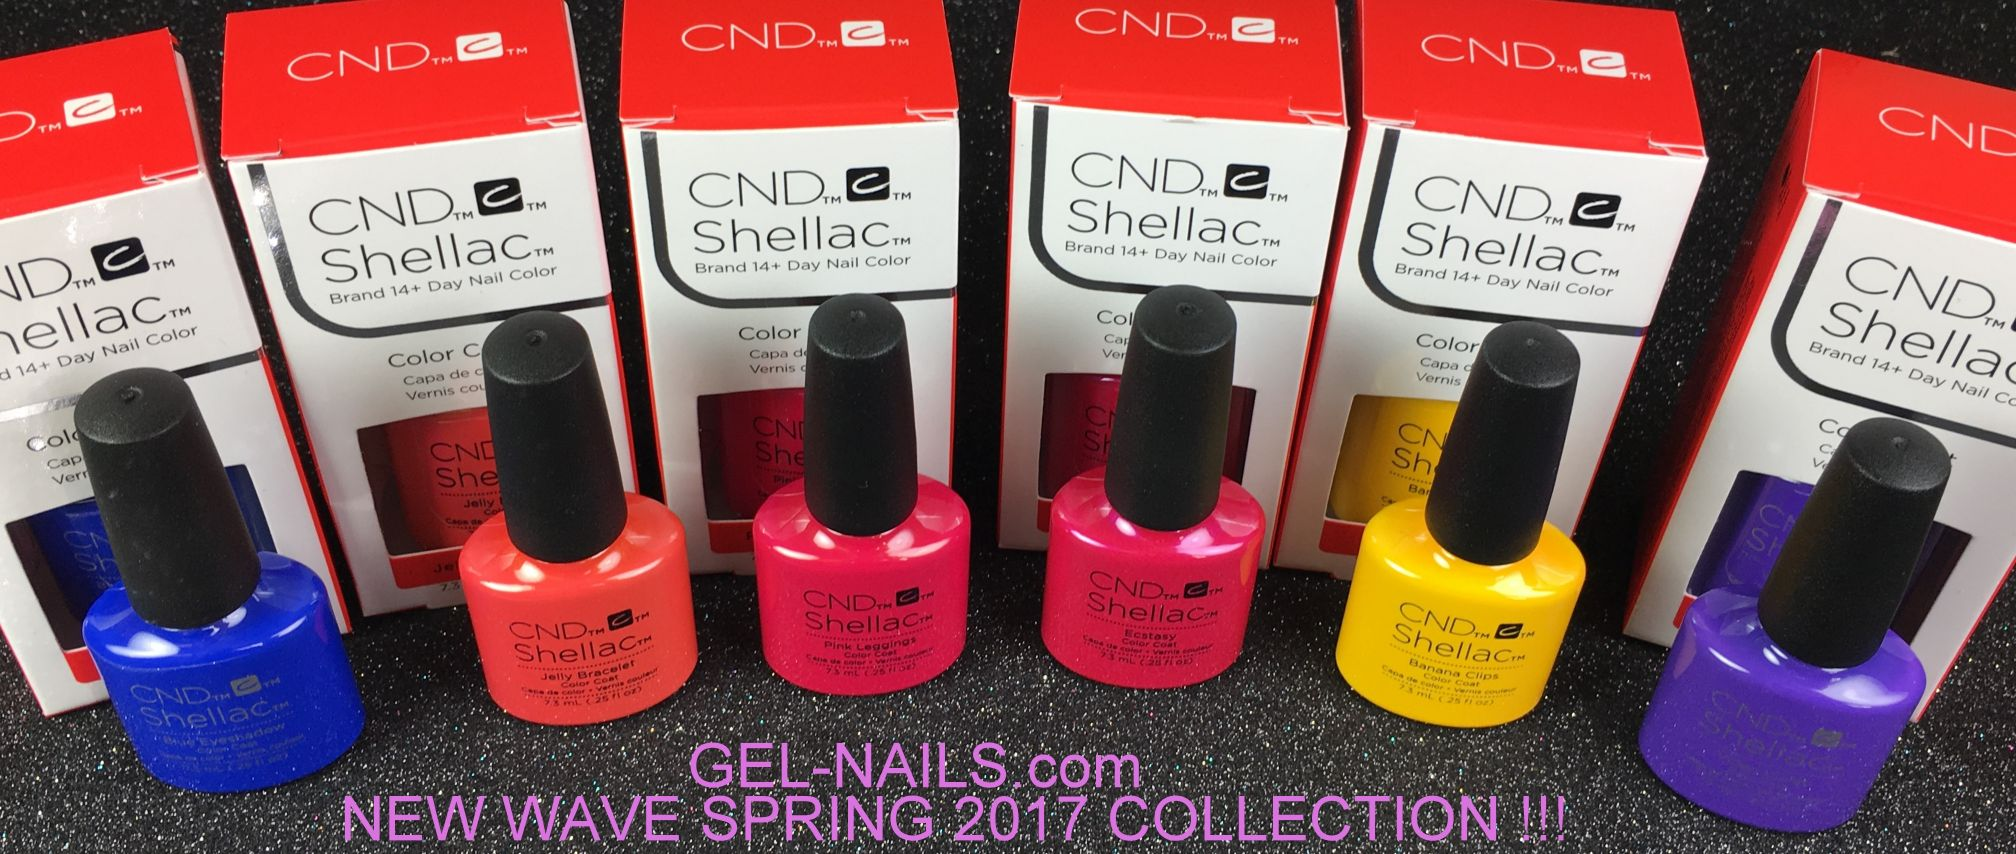 CND Shellac New Wave Spring 2017 Collection